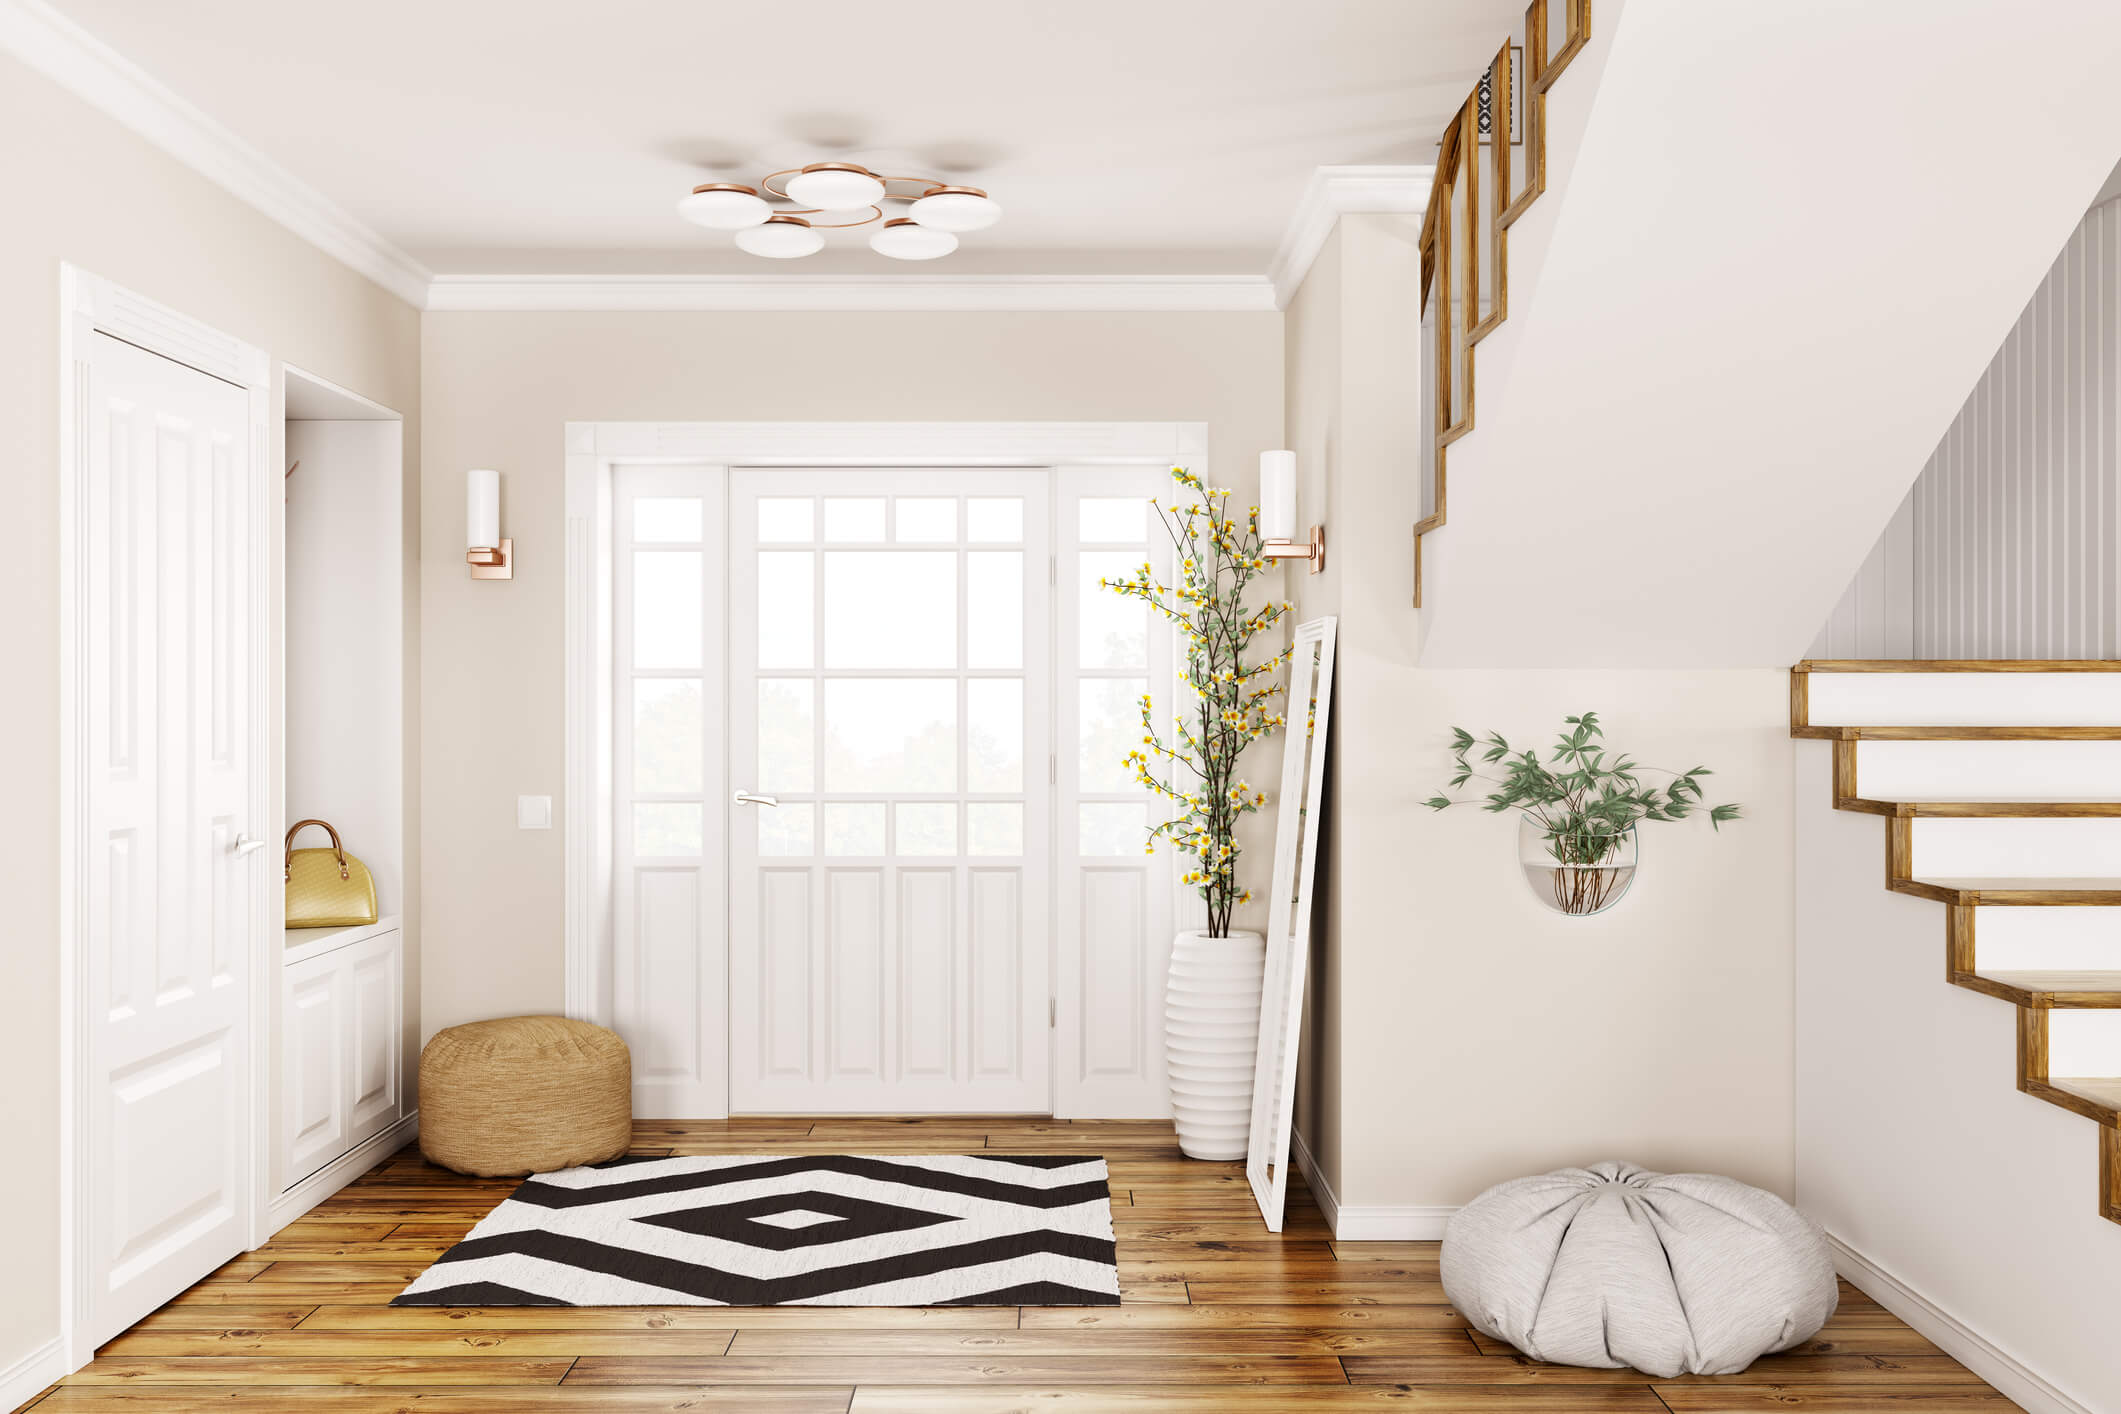 Entryway Design Tips: How To Make An Entrance In Your Home